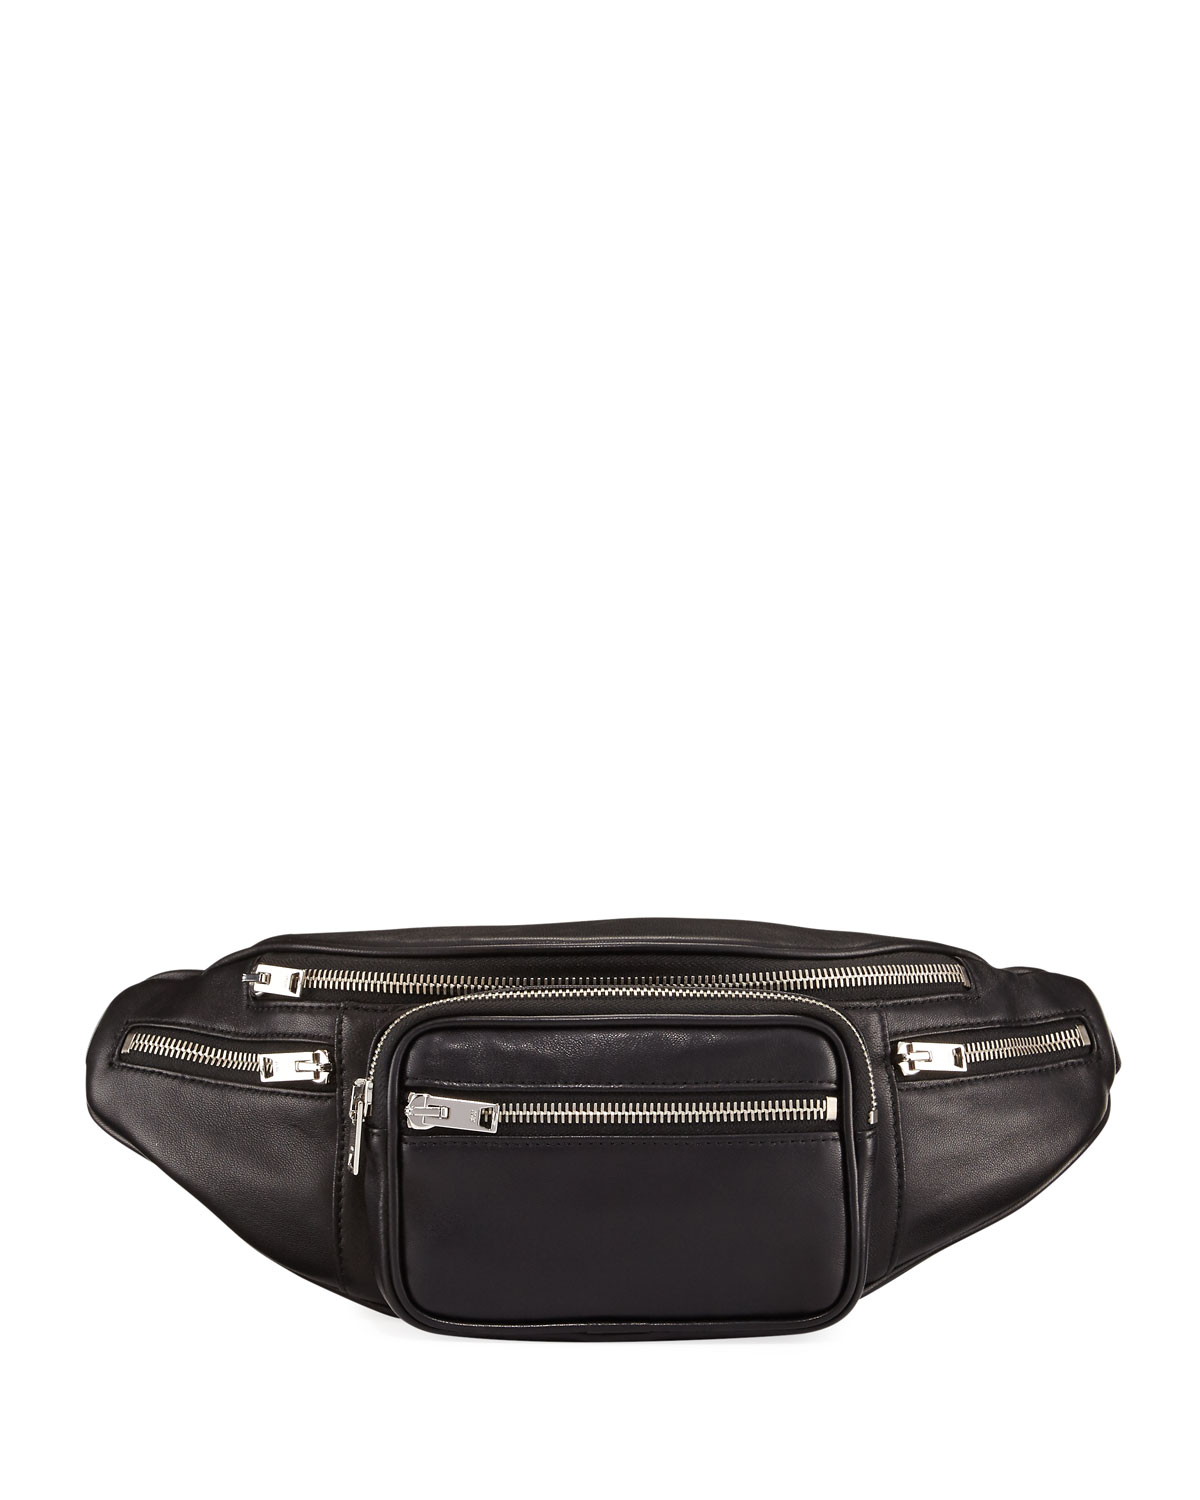 Exact Product: Attica Mini Fanny Pack, Brand: Alexander Wang, Available on: neimanmarcus.com